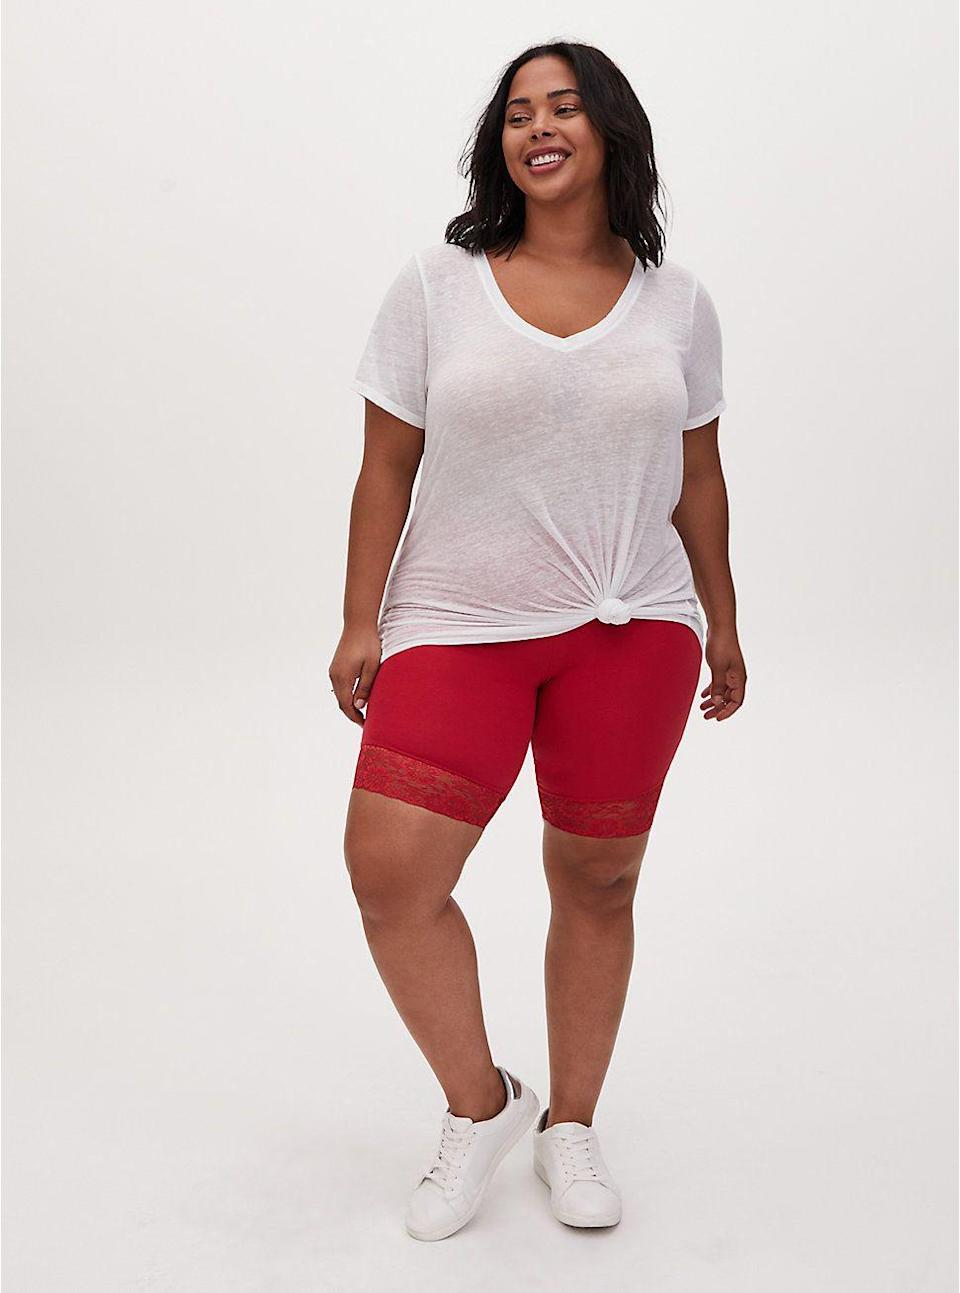 """<p><strong>red</strong></p><p>torrid.com</p><p><strong>$15.75</strong></p><p><a href=""""https://go.redirectingat.com?id=74968X1596630&url=https%3A%2F%2Fwww.torrid.com%2Fproduct%2Fred-lace-trim-bike-short%2F13107153.html%3Fcgid%3DClothing_Bottoms_Shorts%23start%3D16&sref=https%3A%2F%2Fwww.goodhousekeeping.com%2Fbeauty%2Ffashion%2Fg31811906%2Fcute-summer-outfits%2F"""" rel=""""nofollow noopener"""" target=""""_blank"""" data-ylk=""""slk:Shop Now"""" class=""""link rapid-noclick-resp"""">Shop Now</a></p><p>Whether you're running errands in the heat or headed on a hike, an easy summer outfit involves a great pair of bike shorts. To complete the look, throw on your favorite t-shirt and sneakers. </p>"""